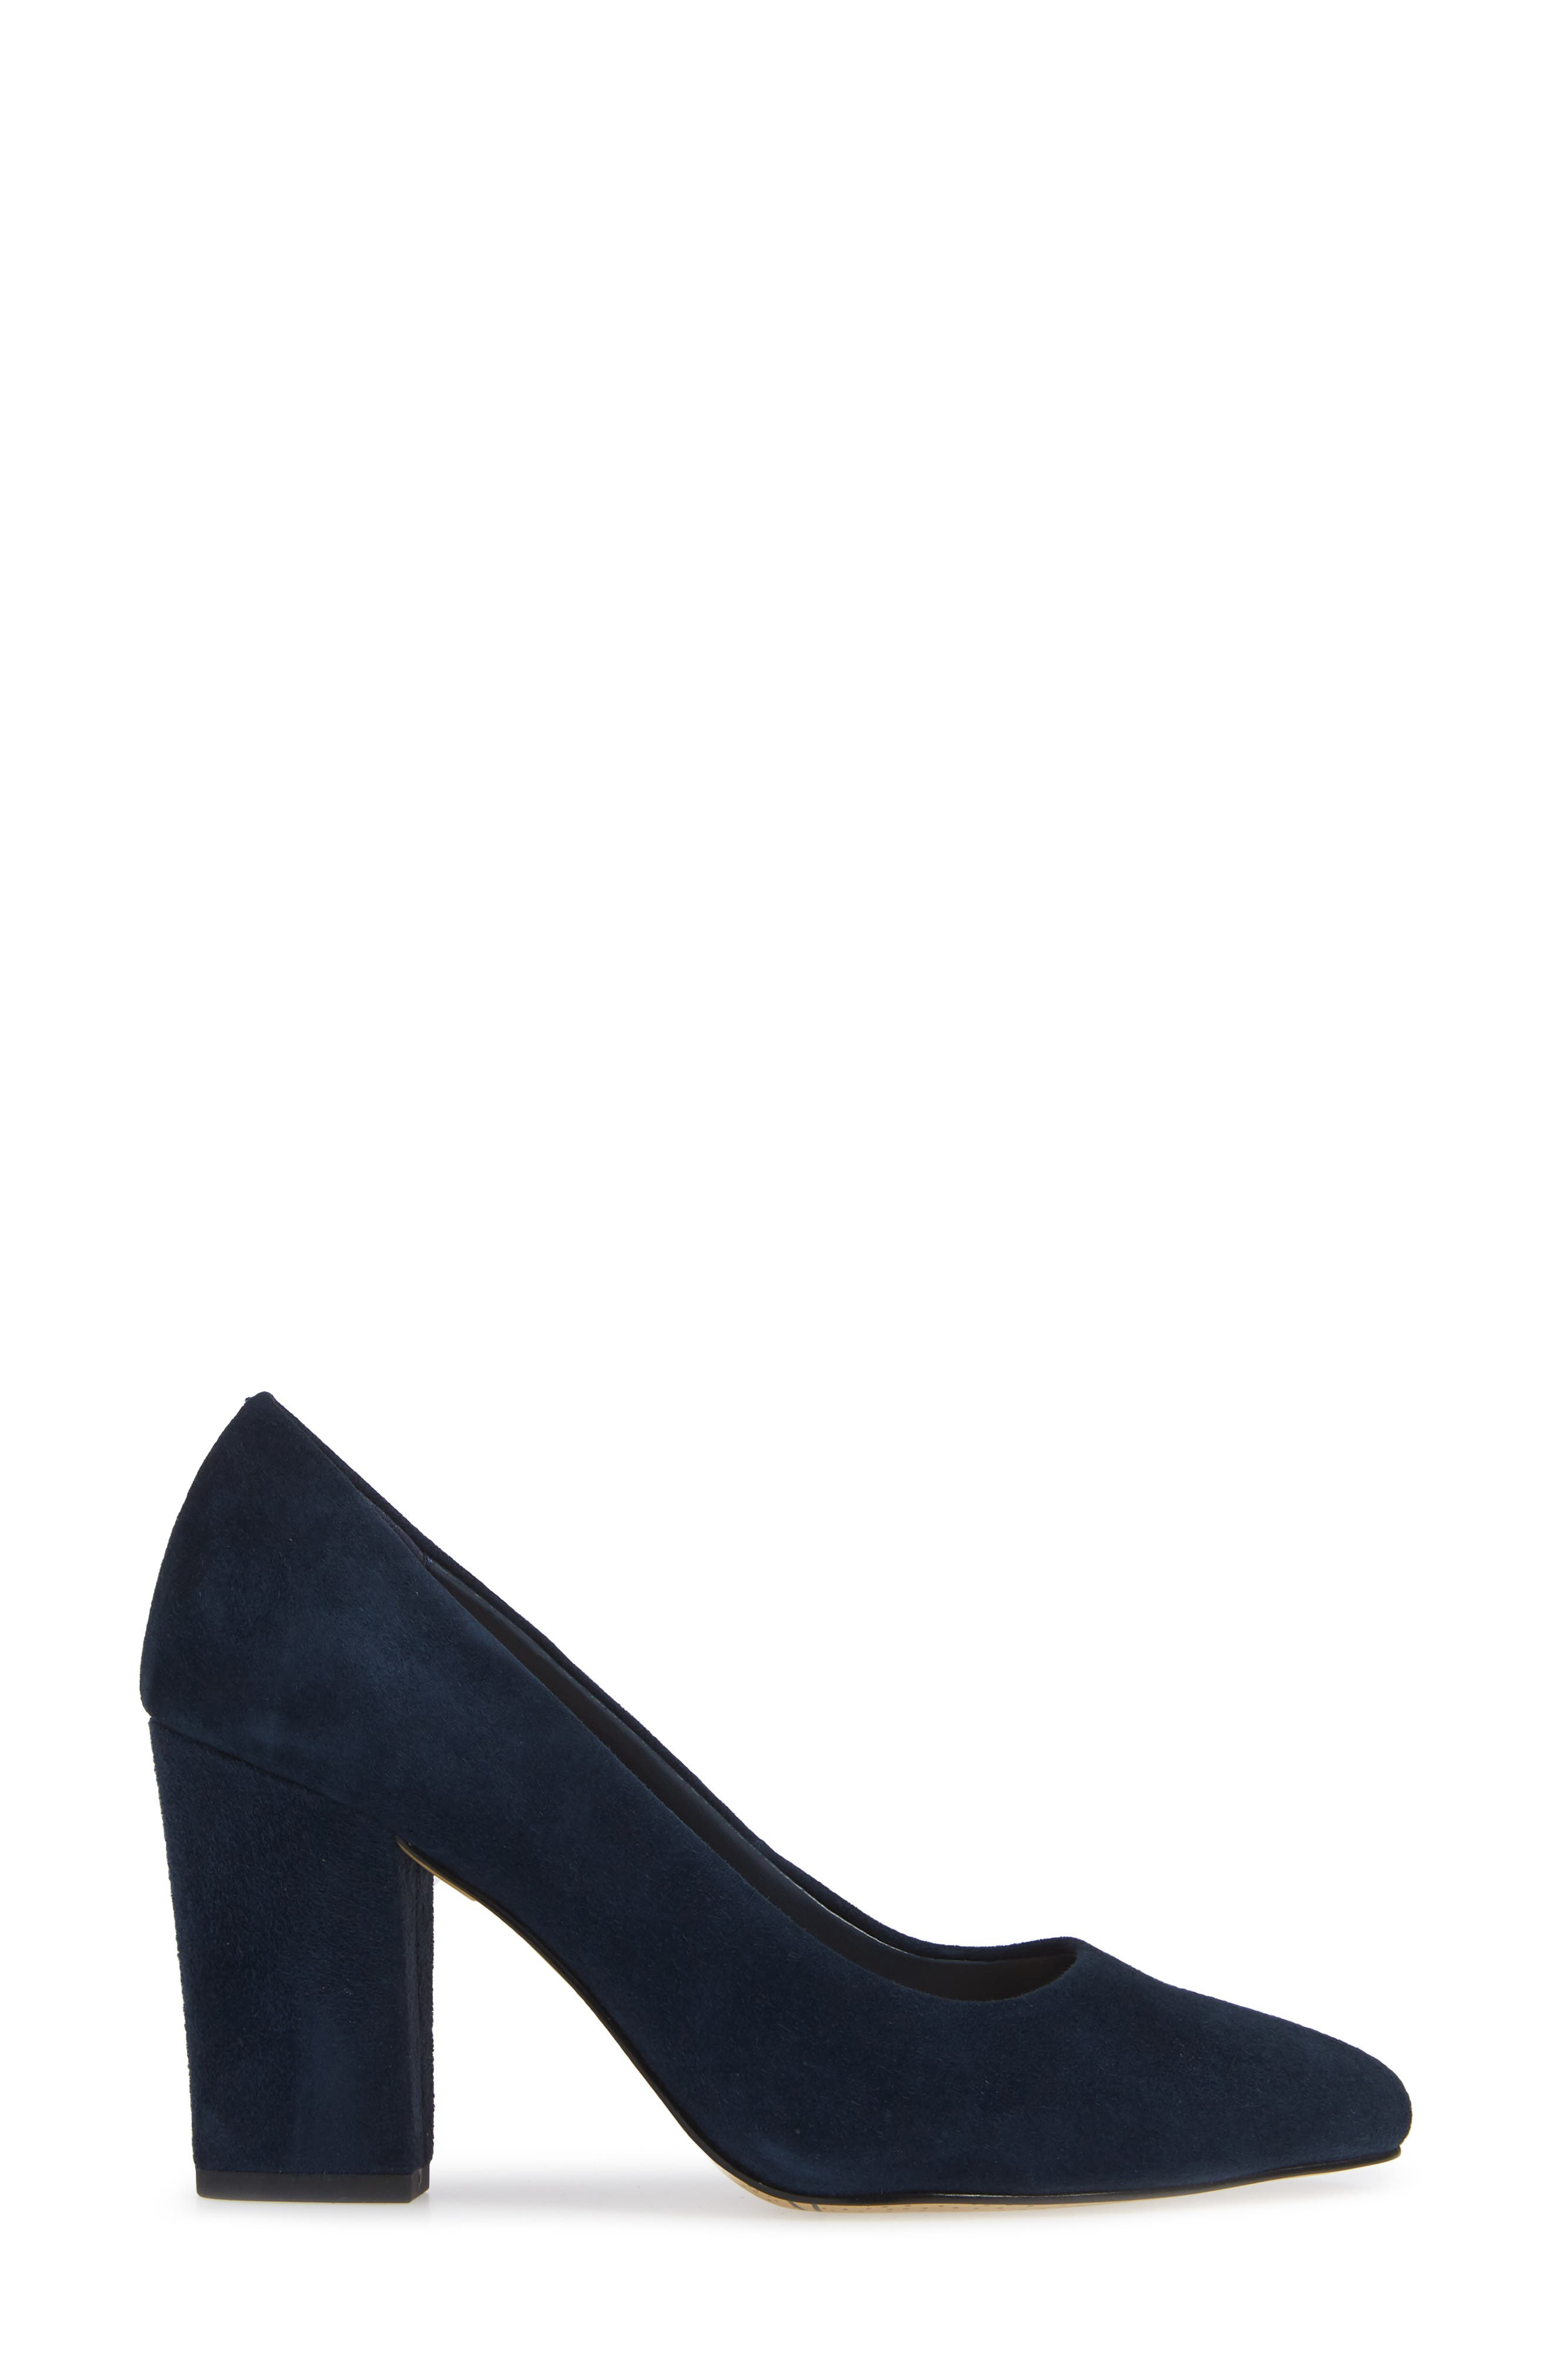 BELLA VITA, Gigi Pump, Alternate thumbnail 3, color, NAVY SUEDE